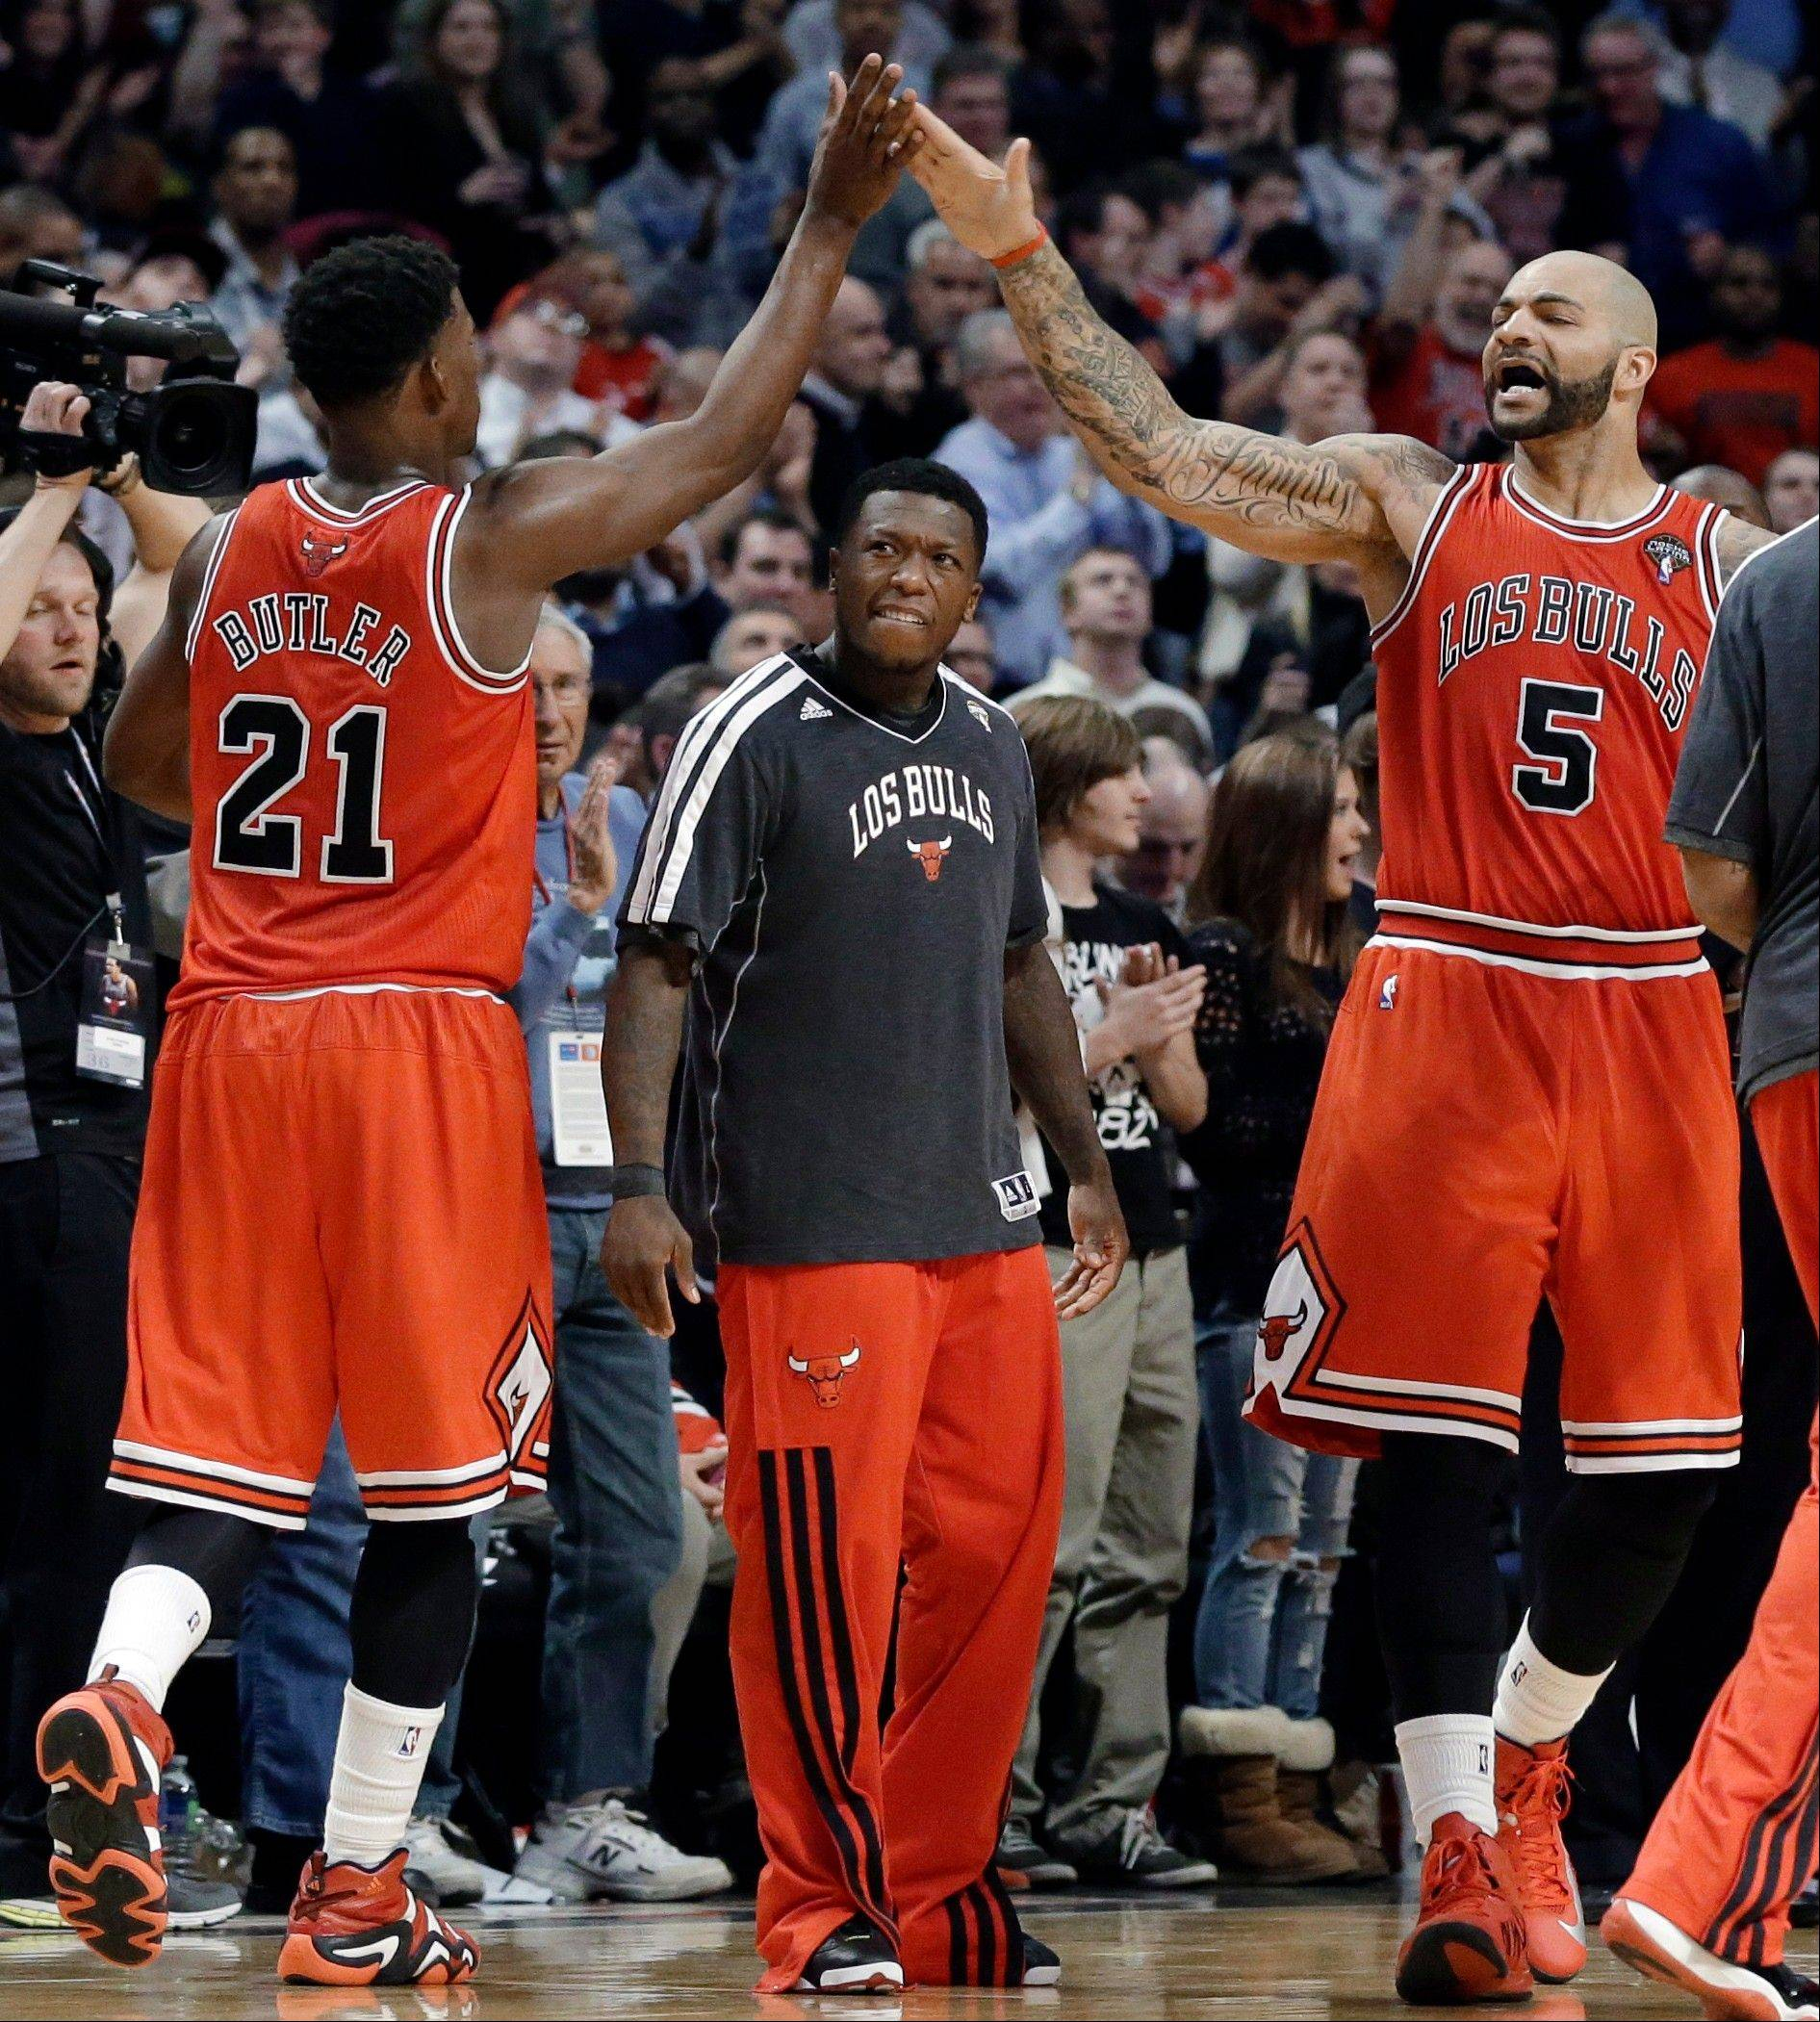 Chicago Bulls guard Jimmy Butler, left, celebrates with forward Carlos Boozer after scoring a basket, as Nate Robinson, center, watches during the second half of an NBA basketball game against the Miami Heat in Chicago on Wednesday, March 27, 2013. The Bulls won 101-97, ending the Heat's 27-game winning streak.